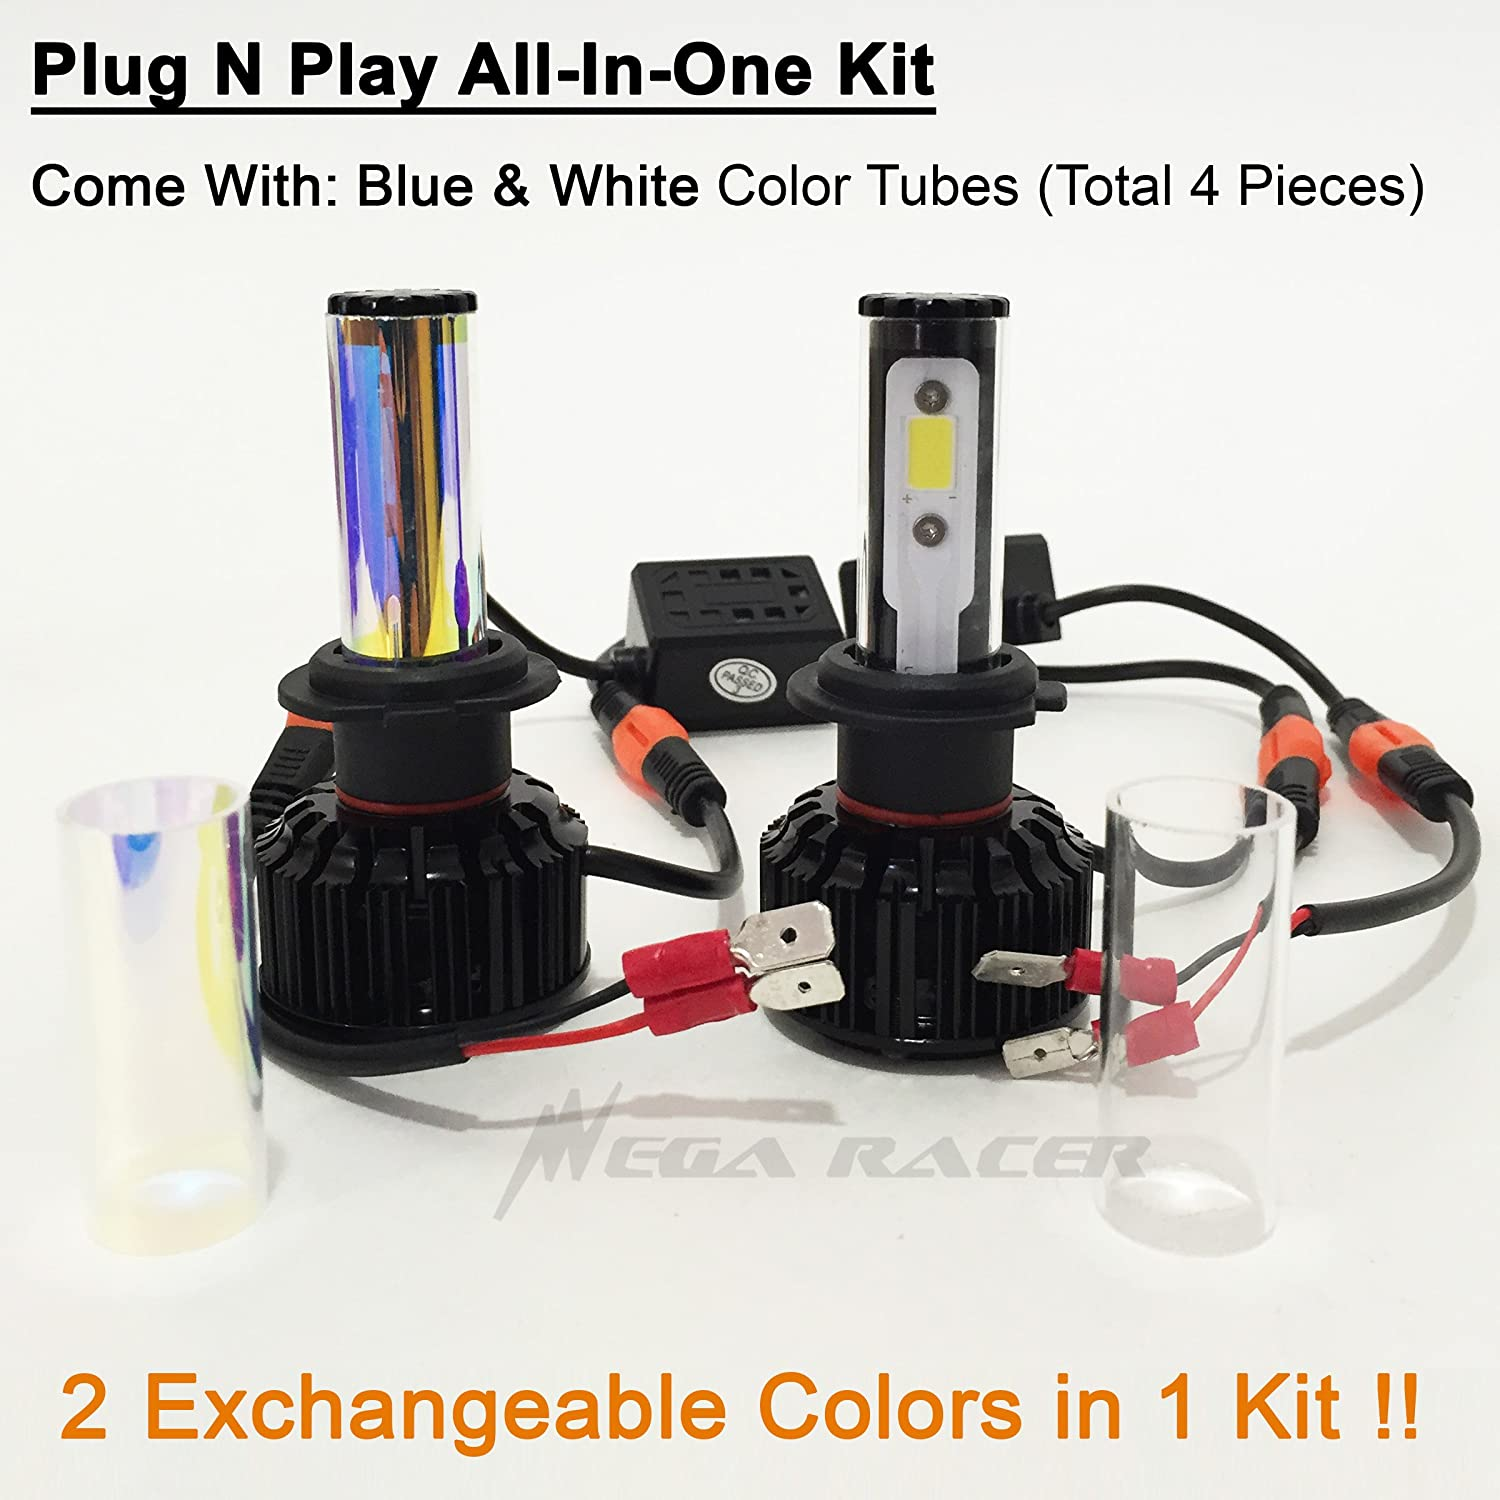 Amazon.com: (2 COLORS IN 1 SET) H7 6000K White 10000K Blue (Low Beam Headlight) CREE COB LED Xenon Conversion Kit 8000 Lumen 80W USA: Automotive